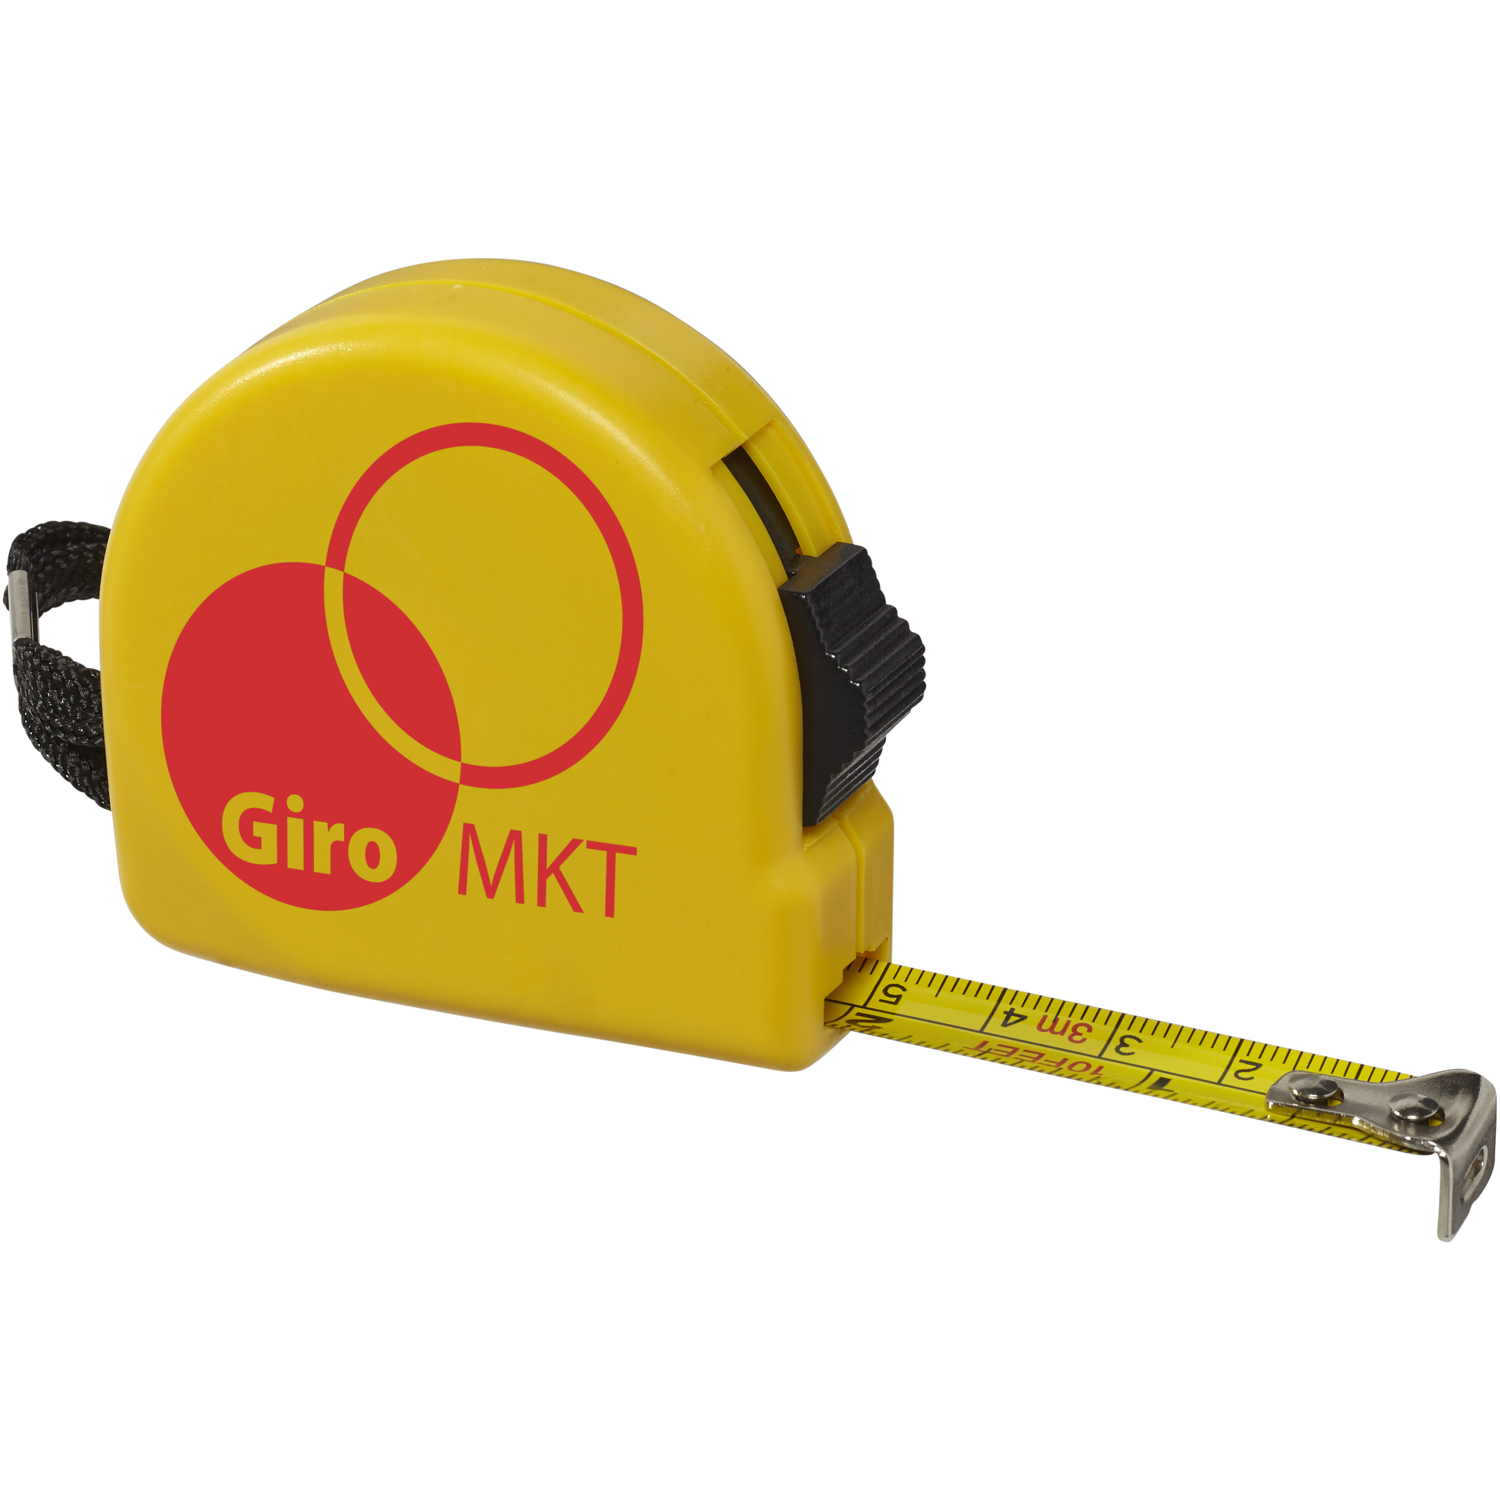 3 metre measuring tape